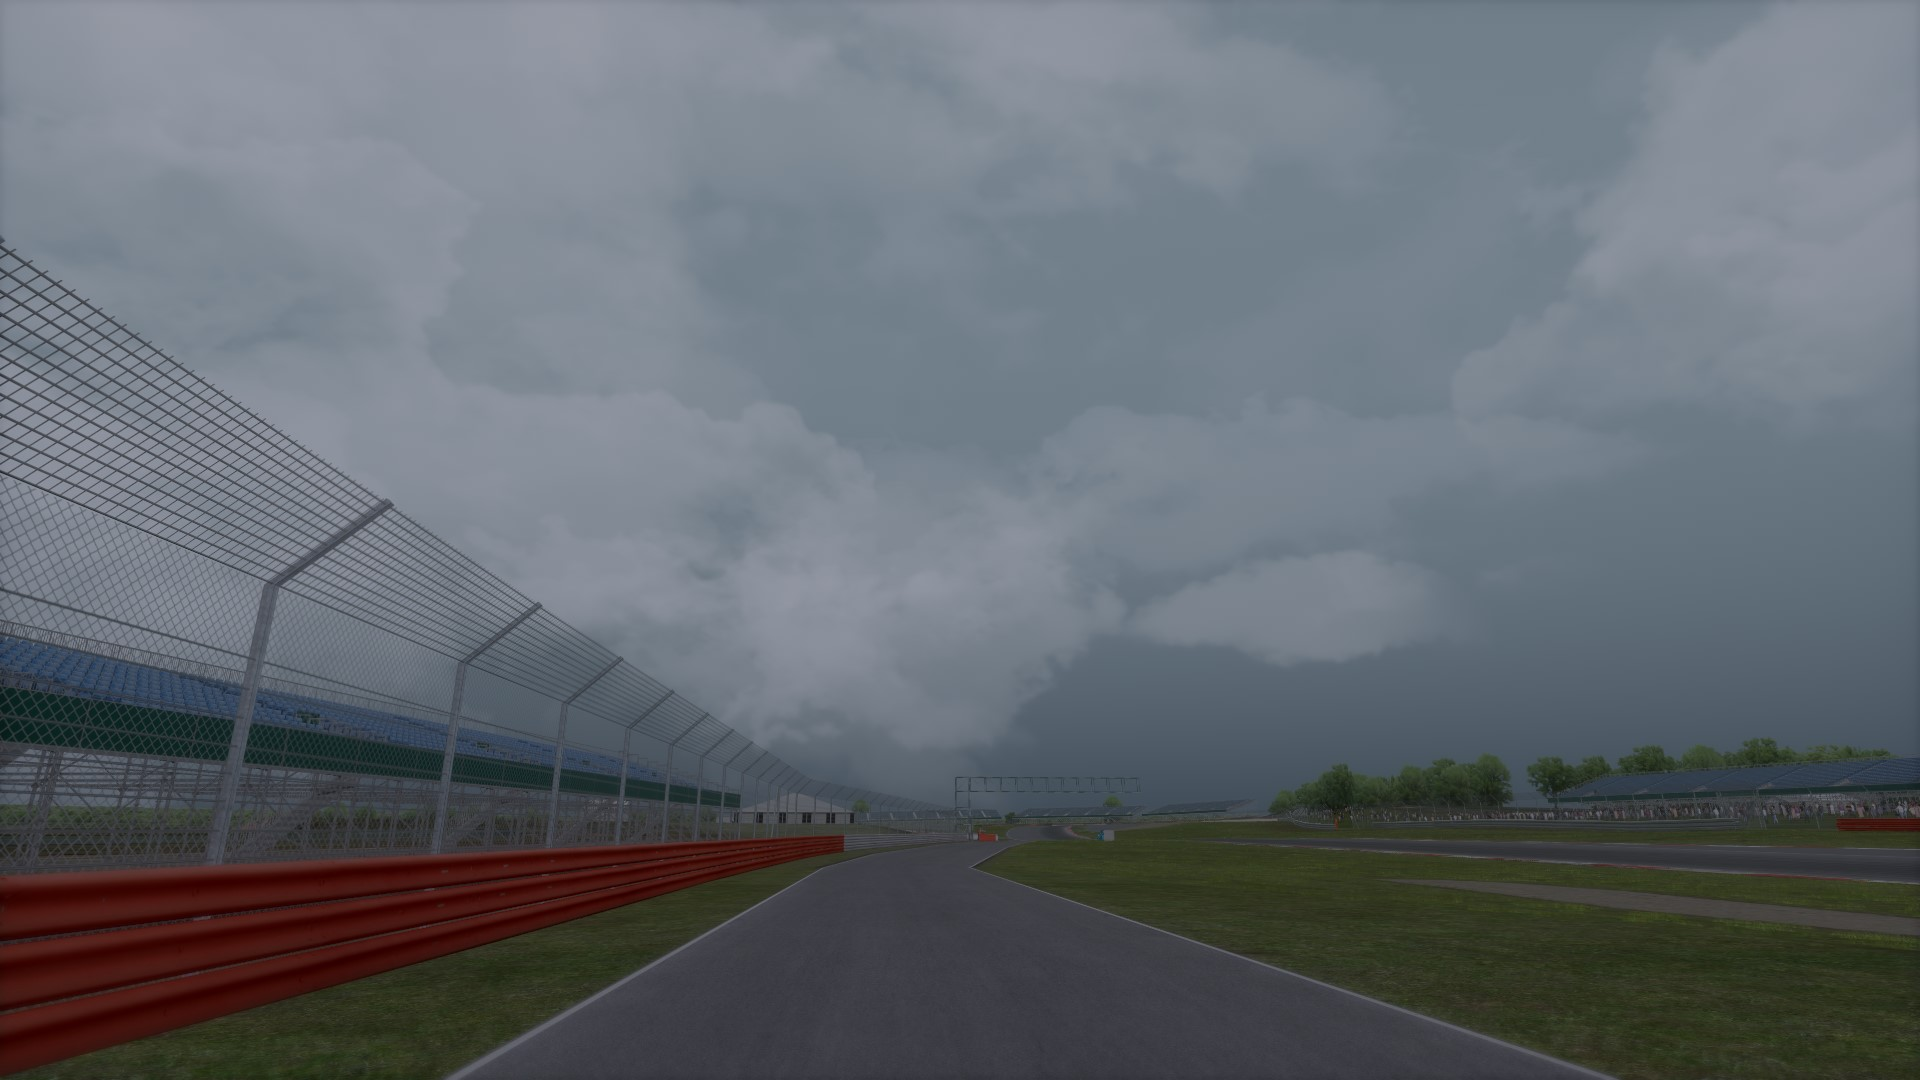 Screenshot_ks_bmw_m235i_racing_silverstone-international_15-8-115-17-28-40.jpg